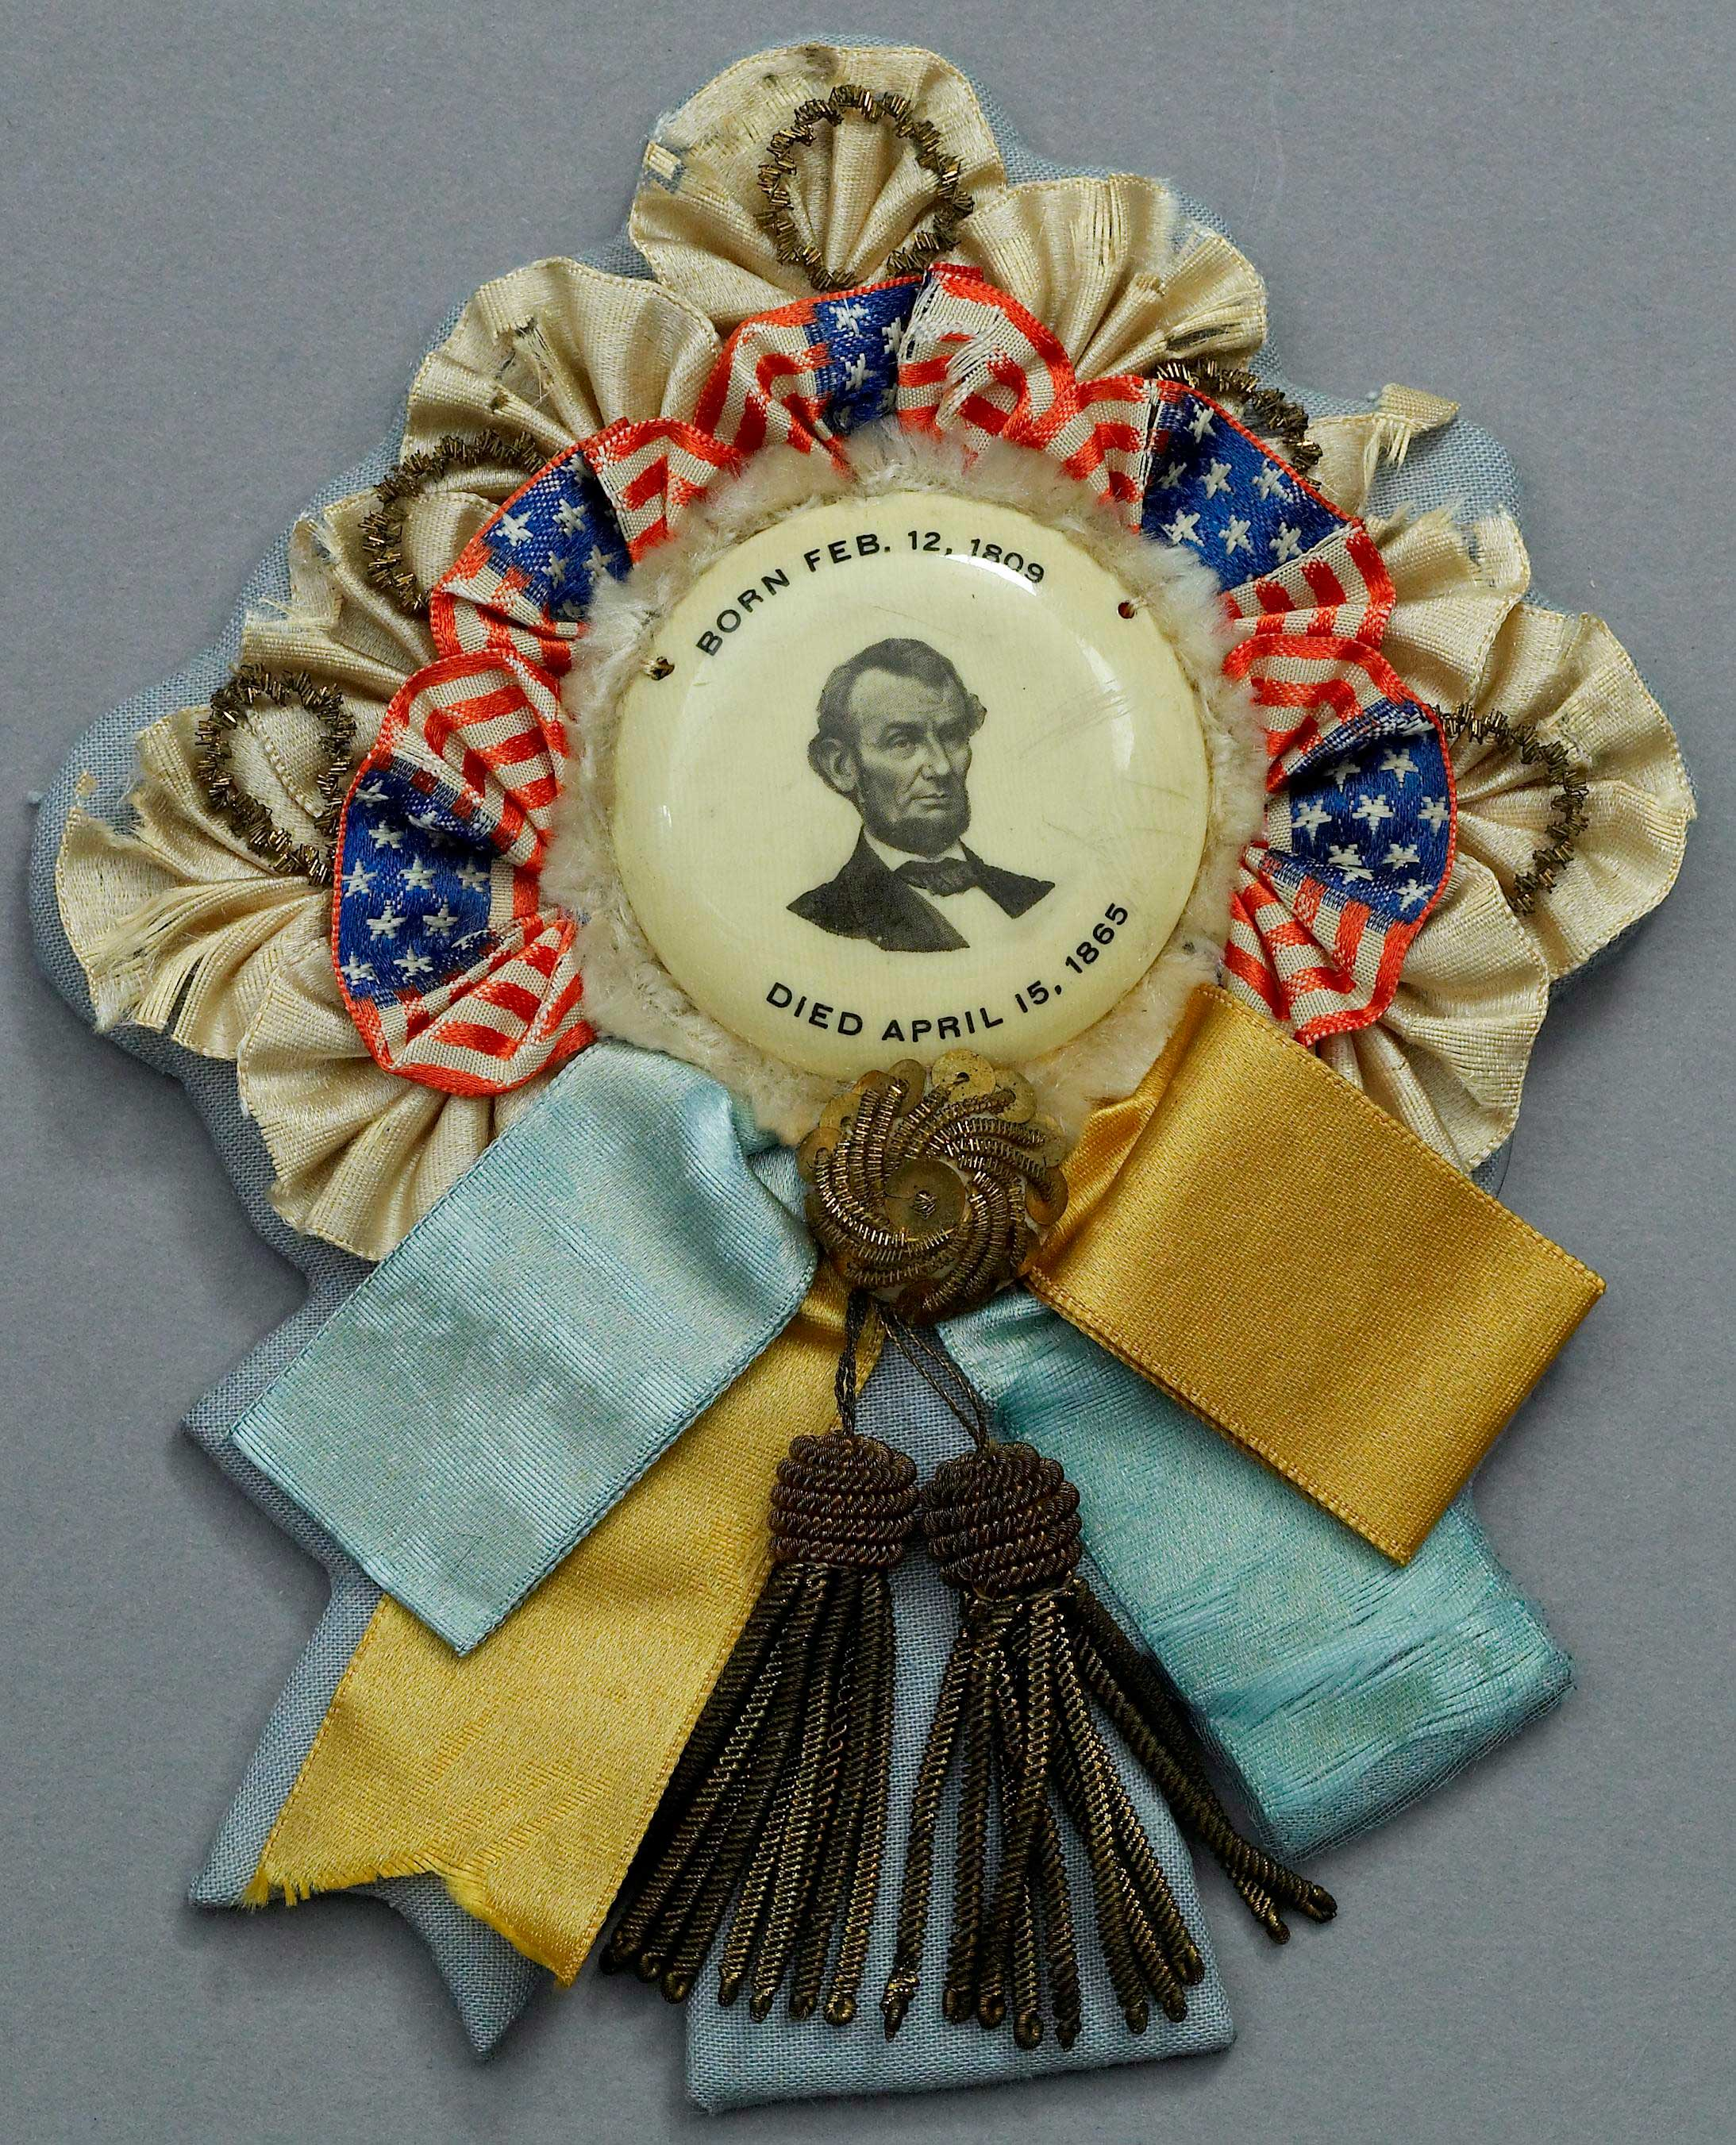 colorful mourning ribbon and badge featuring an engraving of his face from one of Lincoln's funeral train stops.